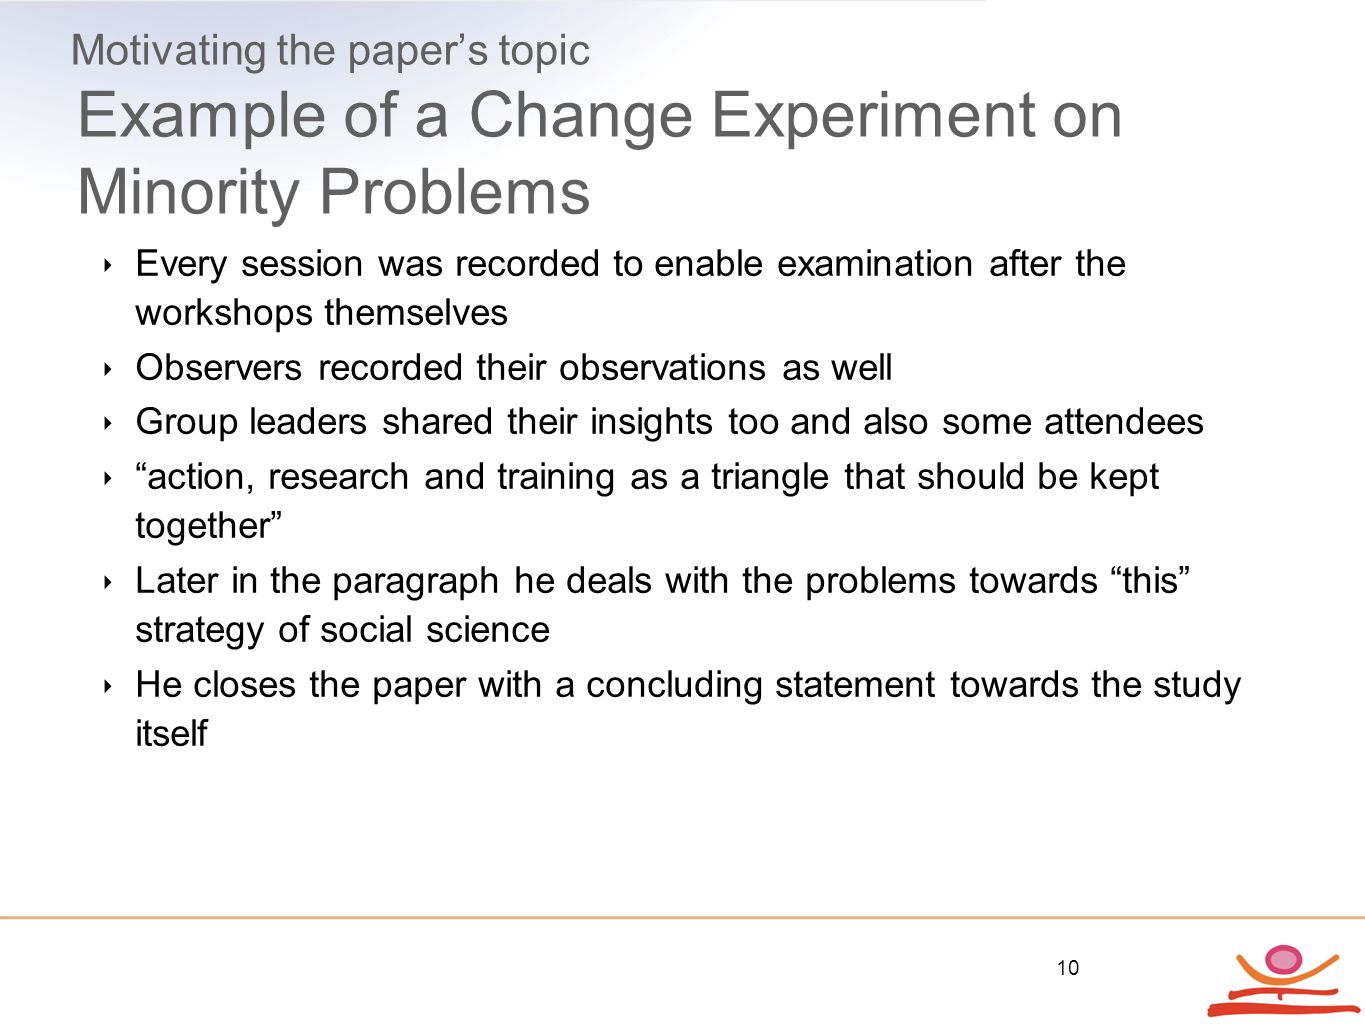 action research problem statement for reading Action research related to classroom problems meaning, steps involved and example slideshare uses cookies to improve functionality and performance, and to provide you with relevant advertising if you continue browsing the site, you agree to the use of cookies on this website.